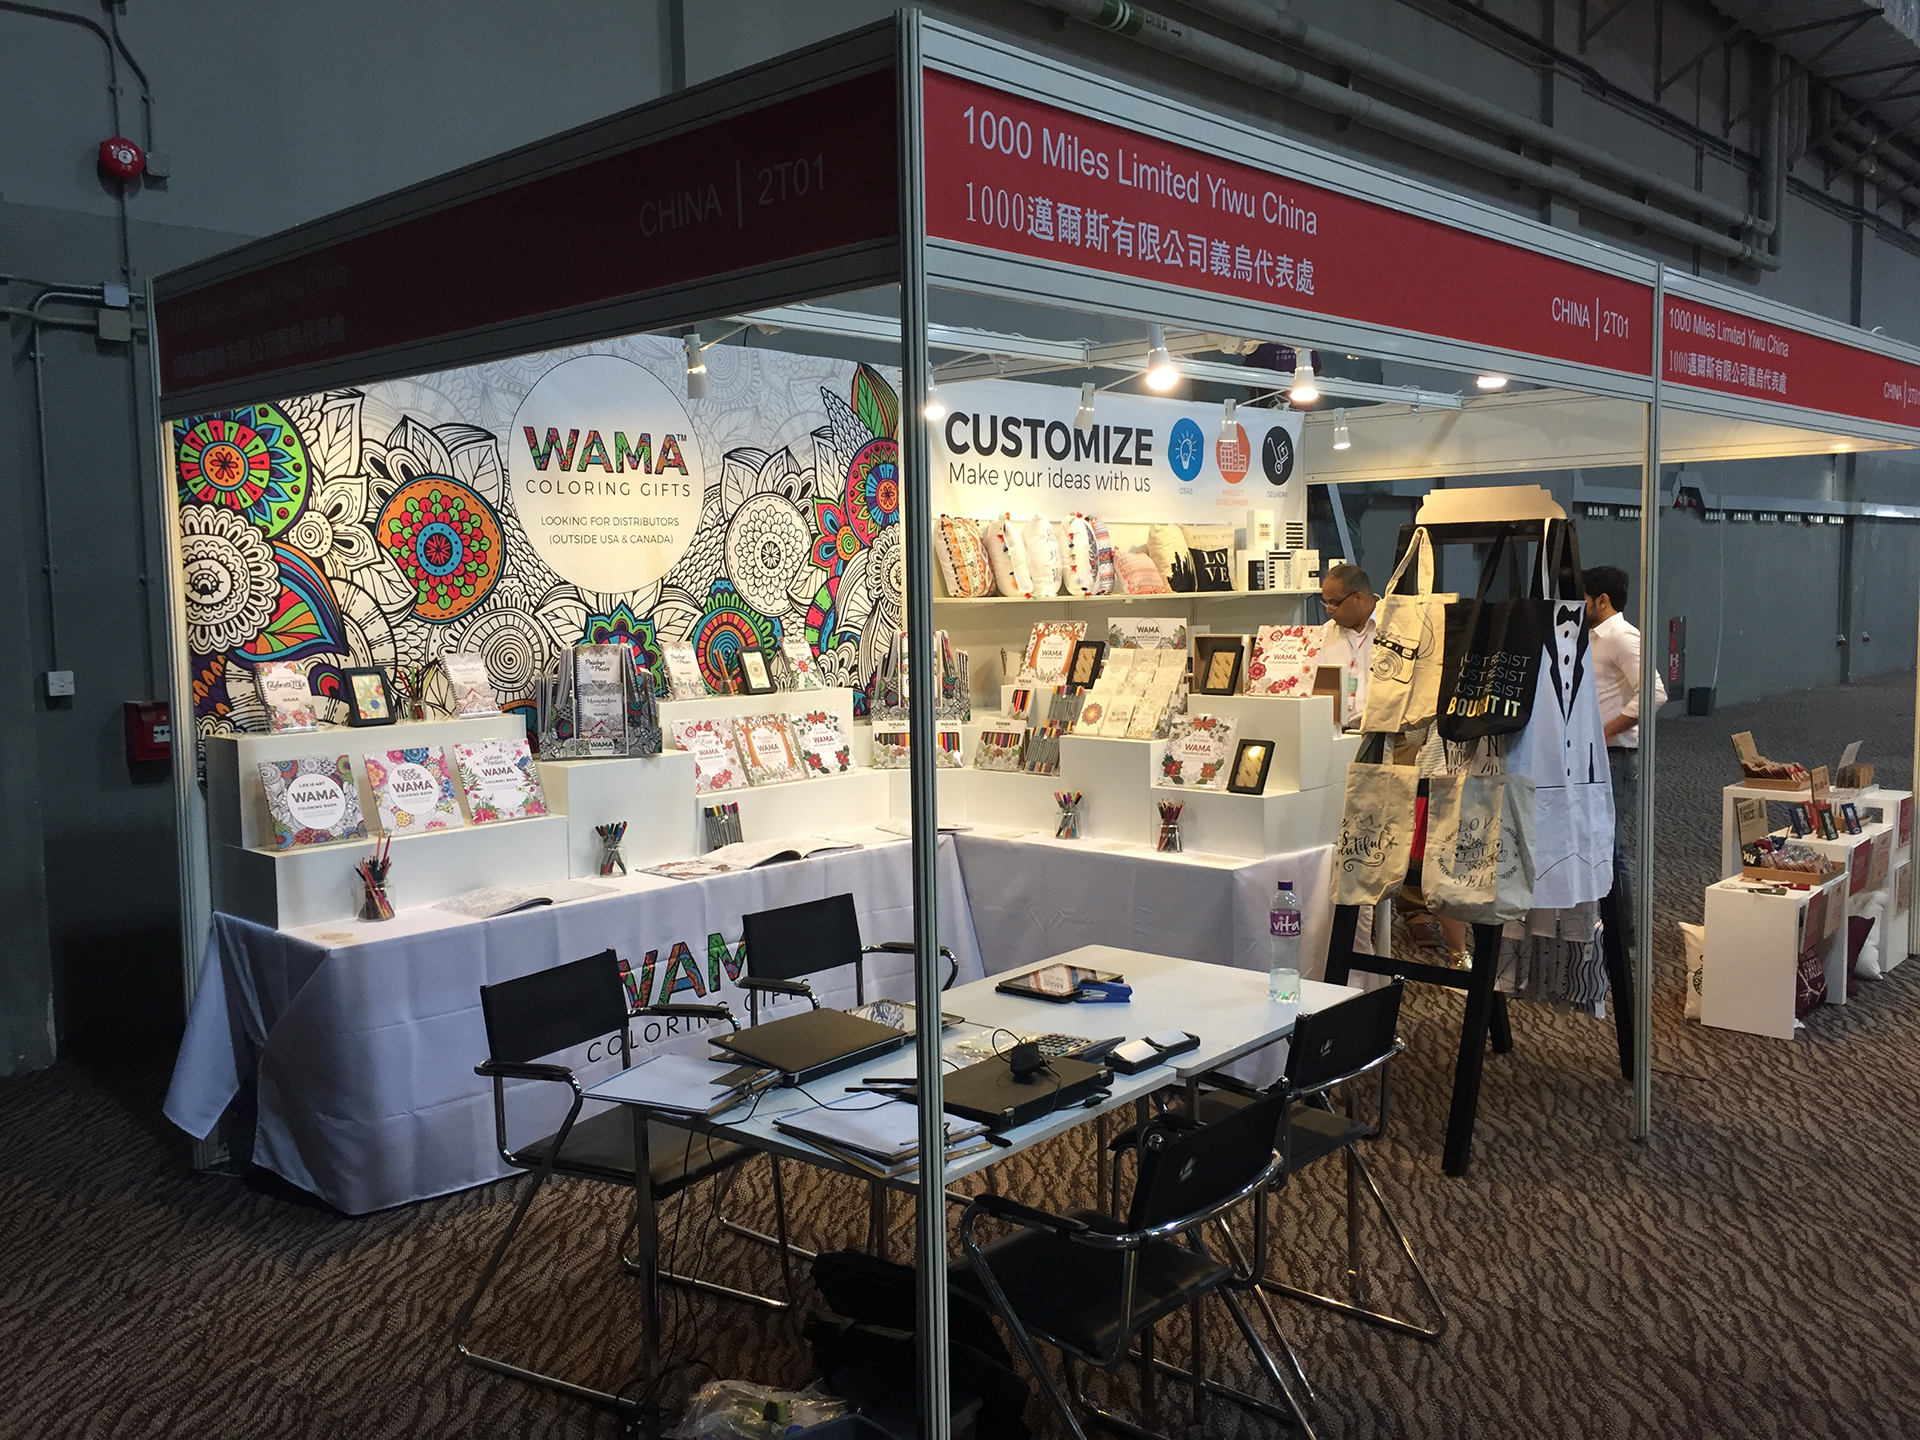 1000 Miles trade show, featuring WAMA coloring books